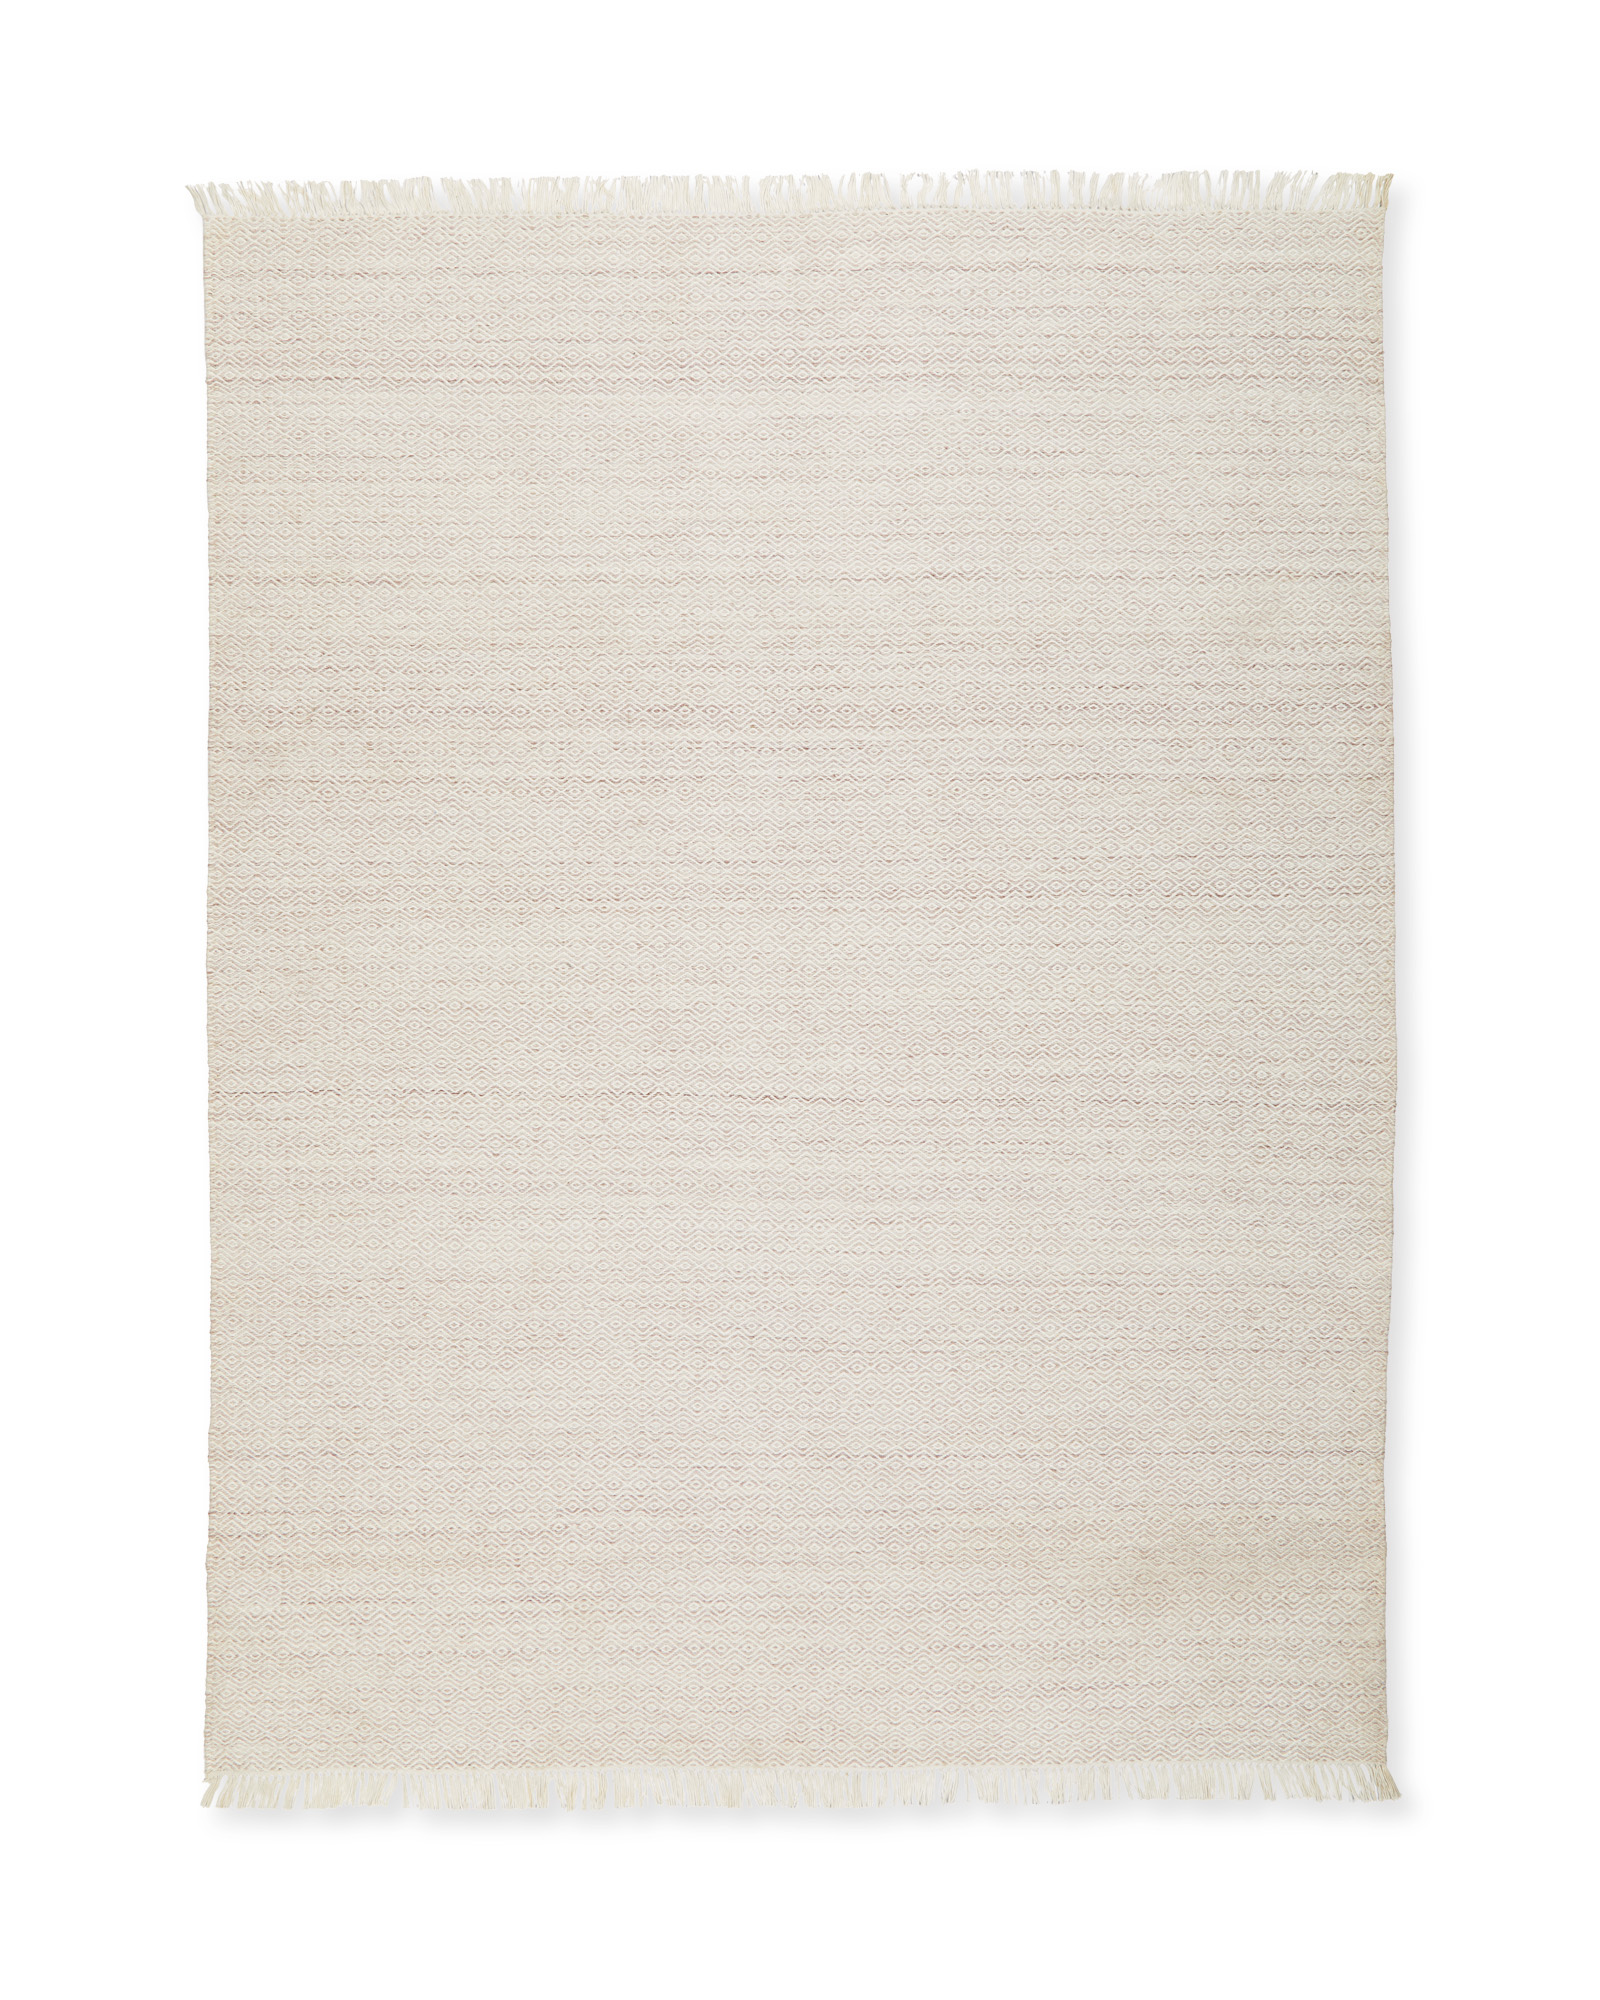 Seaview Rug, Wild Rose